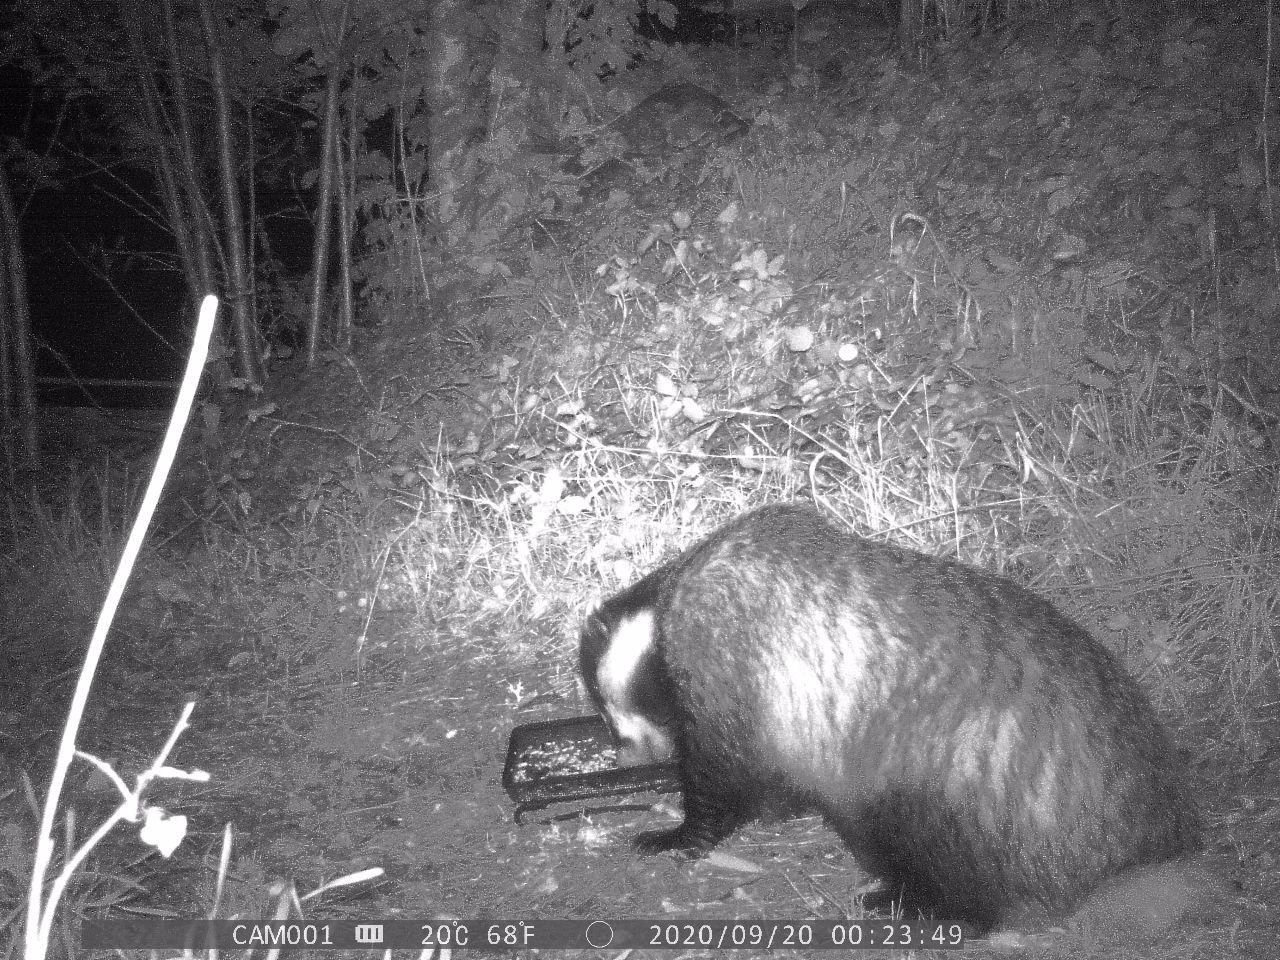 Badger sat down eating some bird seed